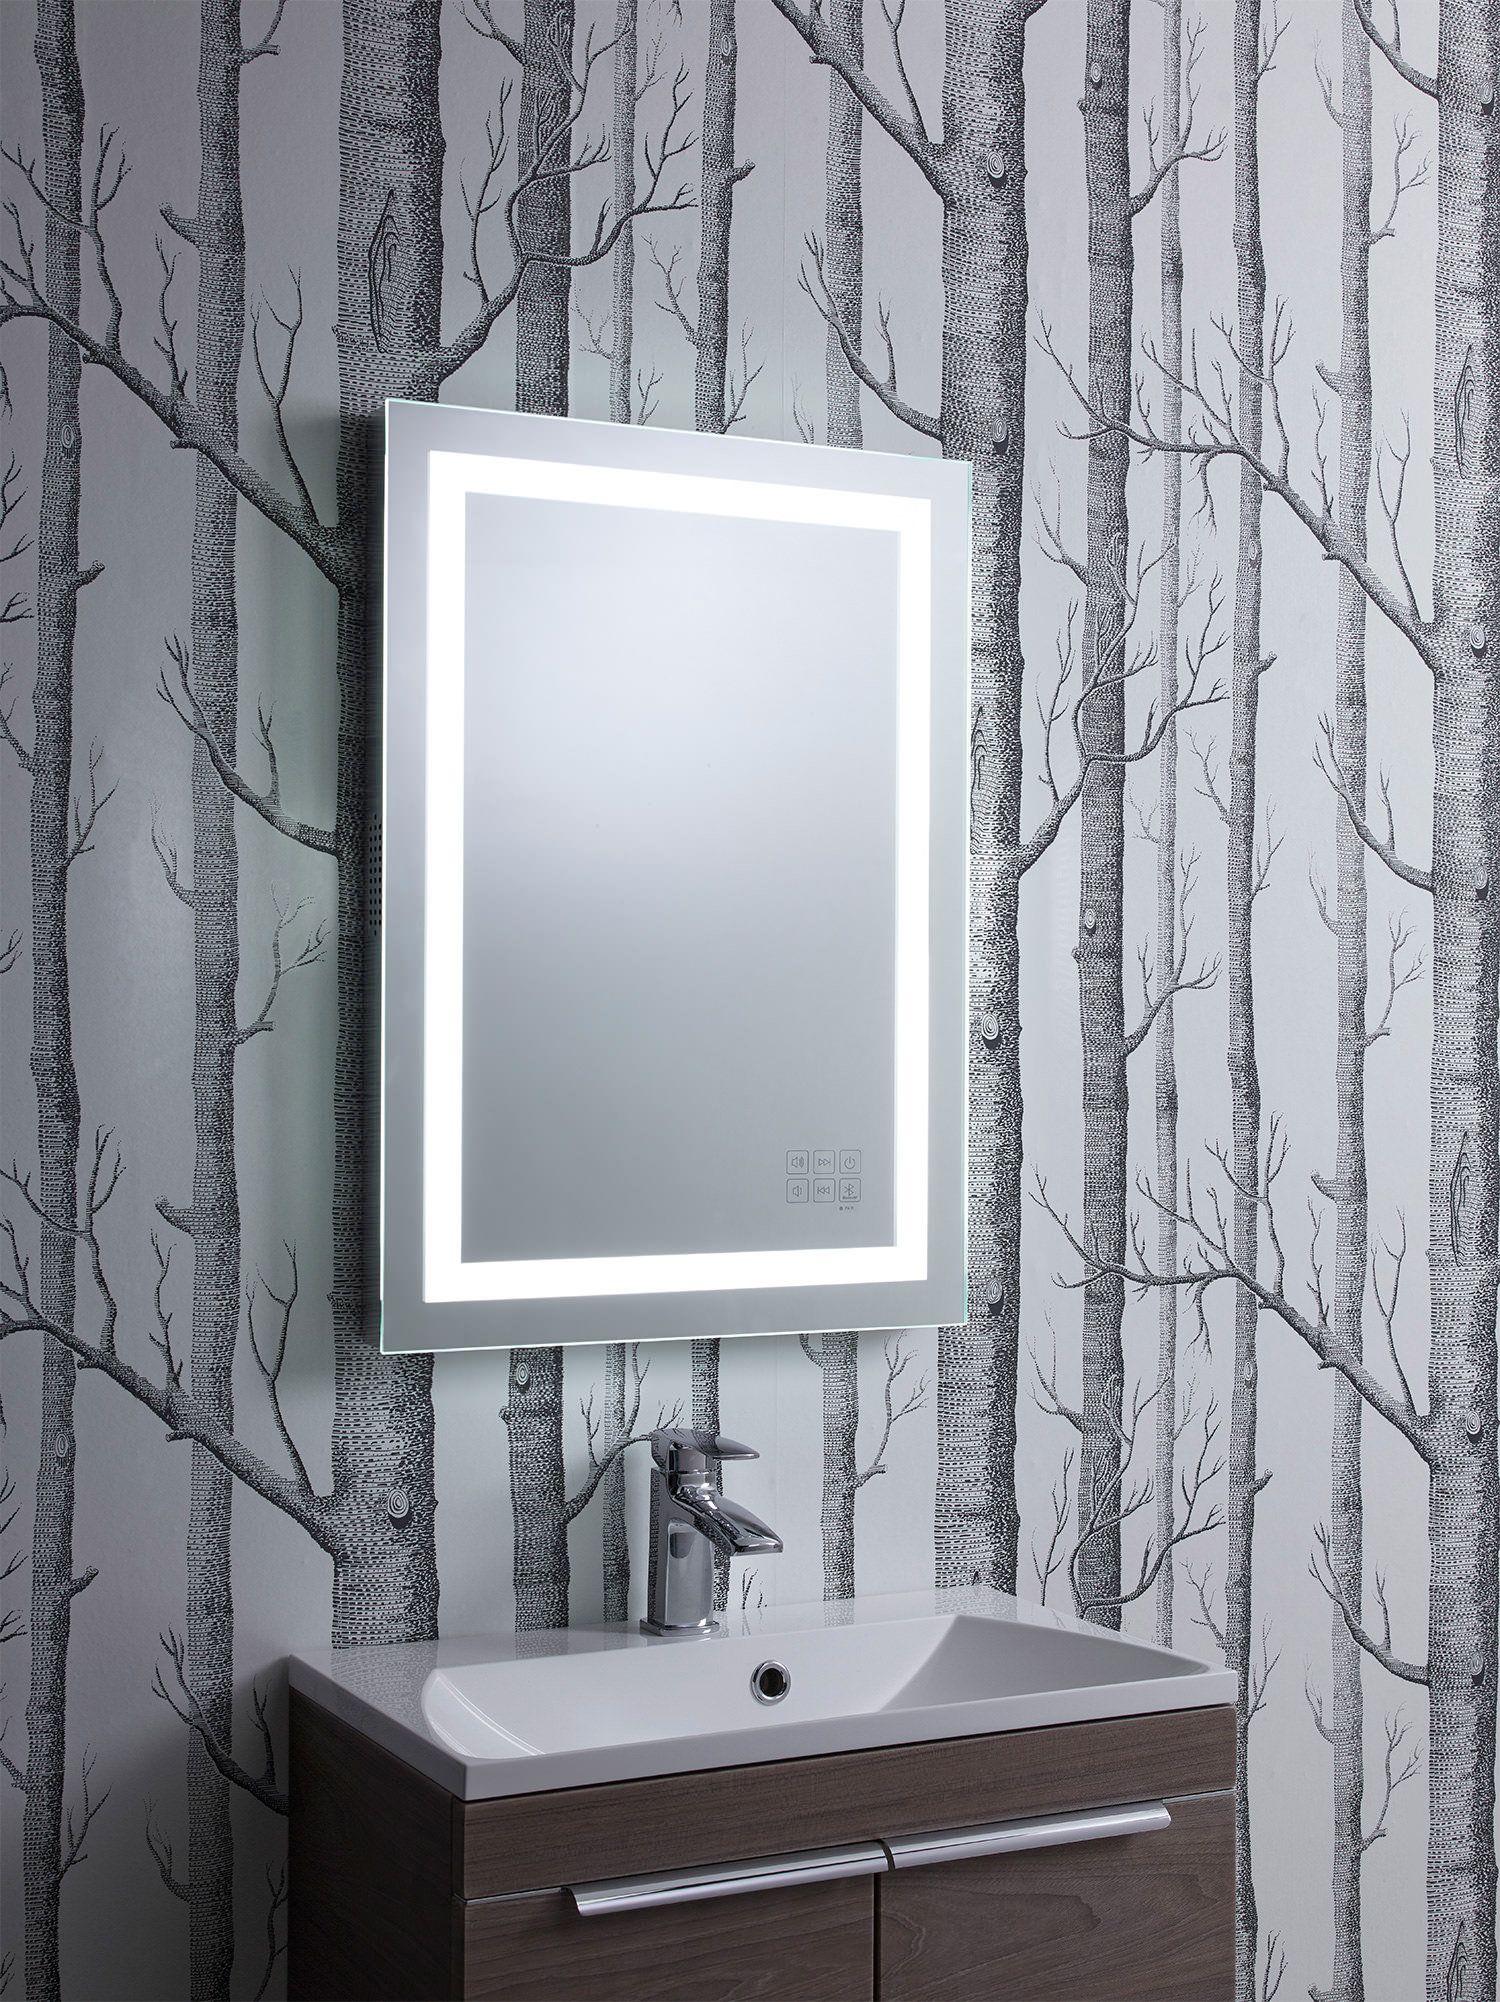 Alternate Image Of Roper Rhodes Encore Bluetooth Mirror 500 X 700mm Chrome